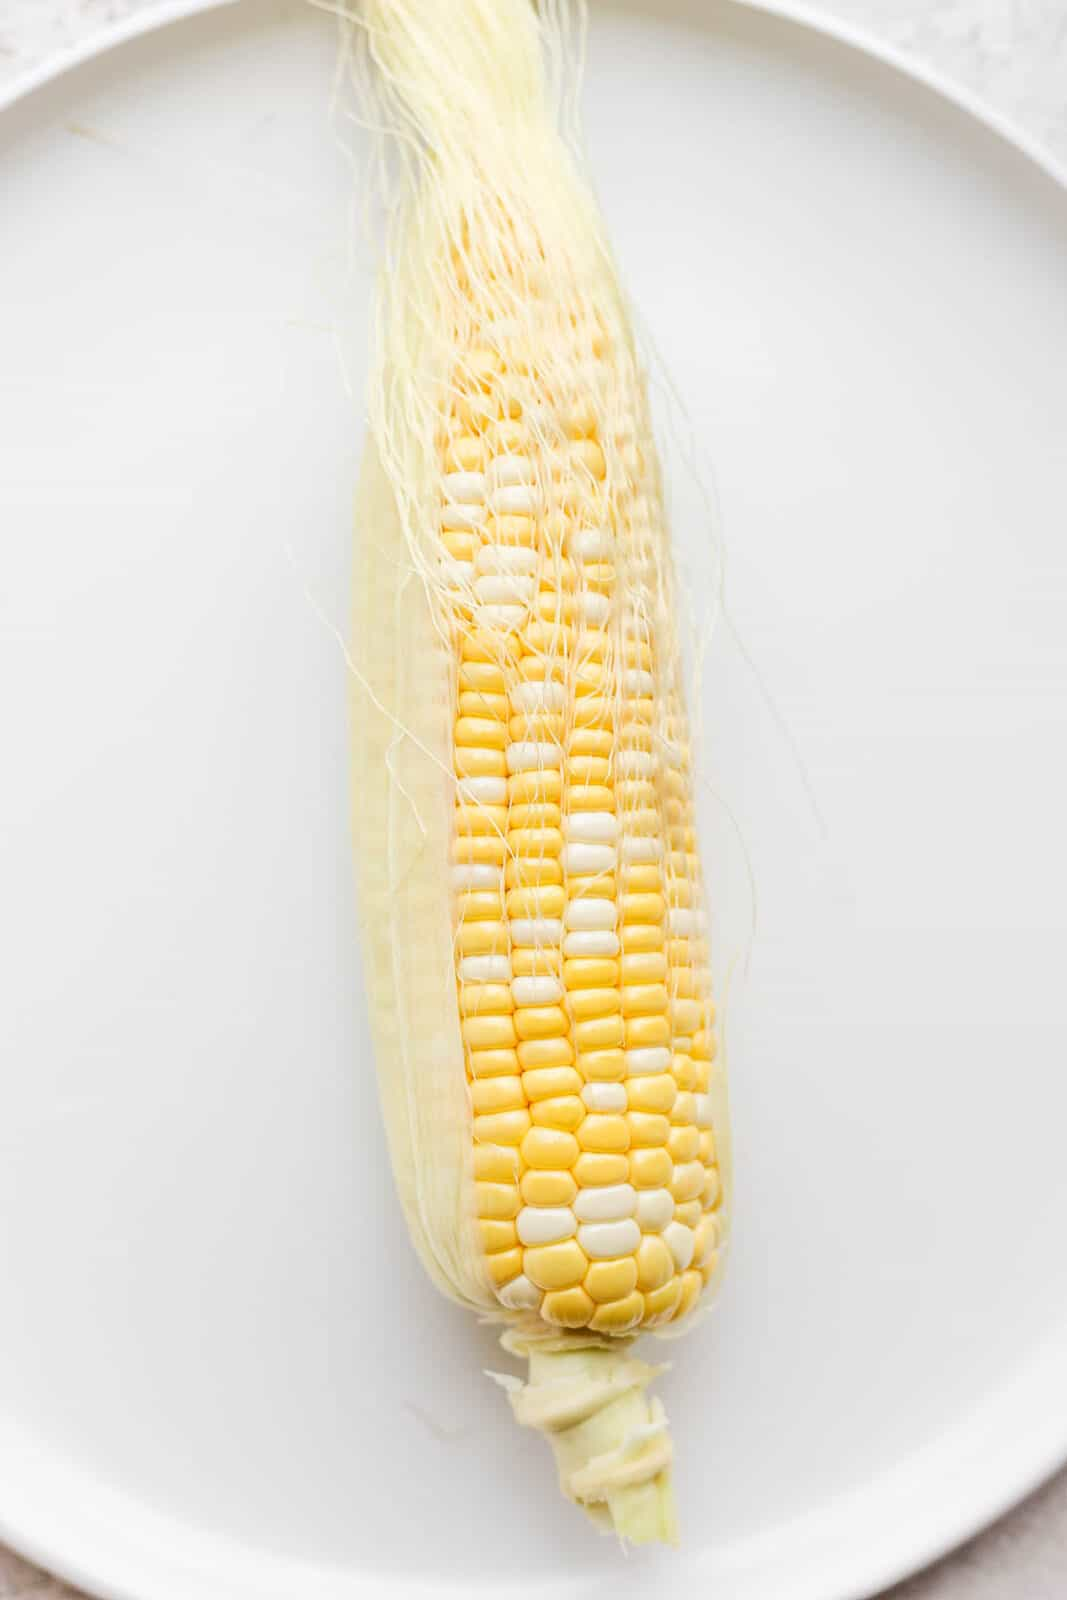 One piece of sweet corn on a plate with husk removed.